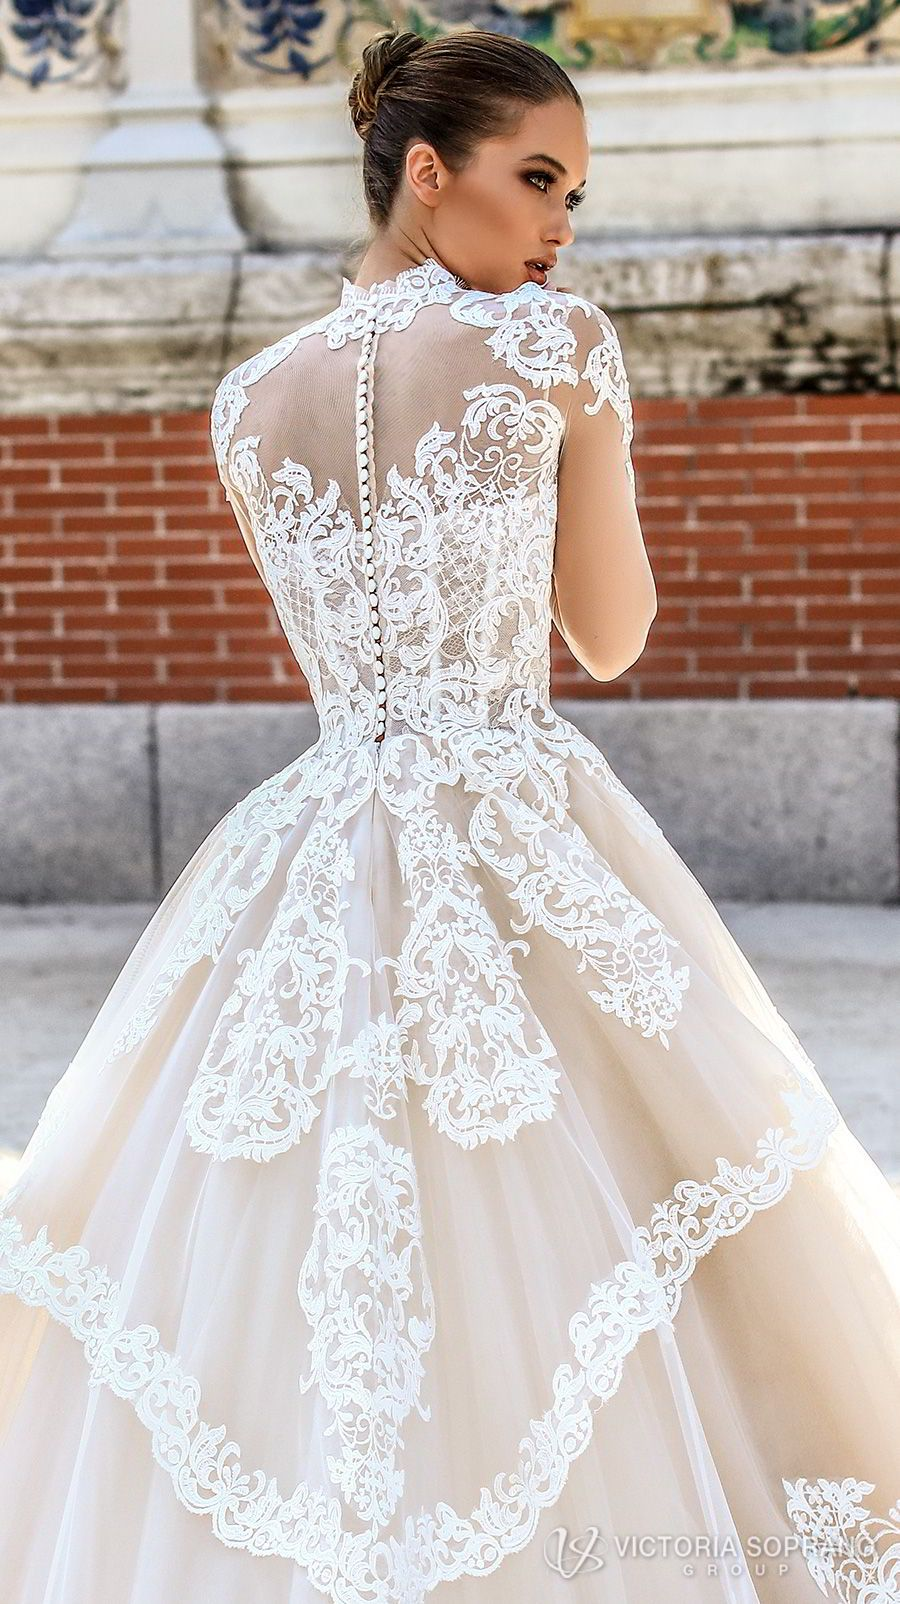 Long sleeve wedding dress topper  Victoria Soprano  Wedding Dresses u ucThe Oneud Bridal Collection